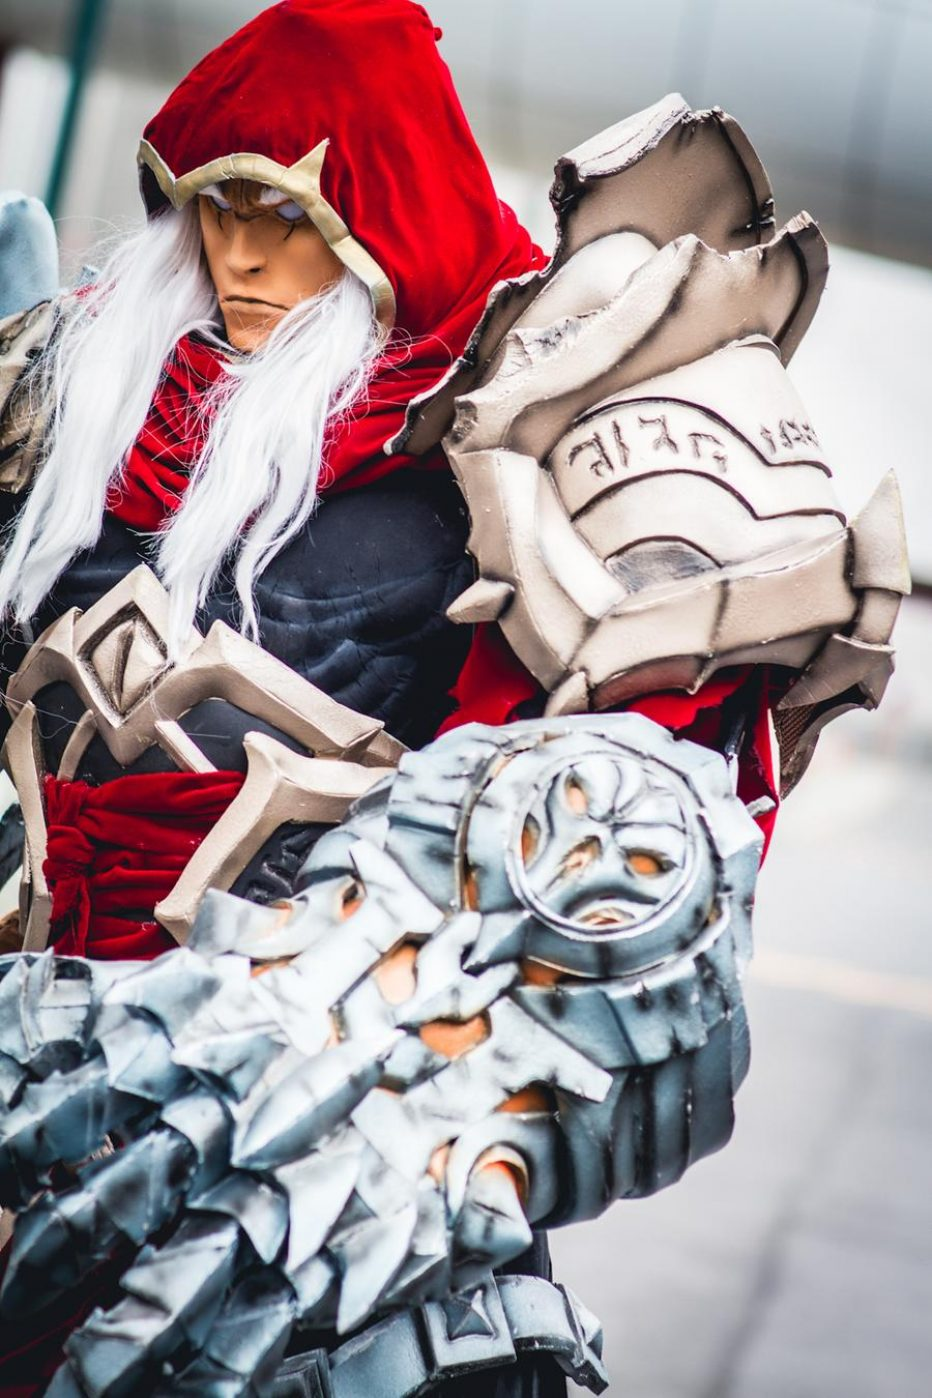 Darksiders-War-Cosplay-Gamers-Heroes-1.jpg